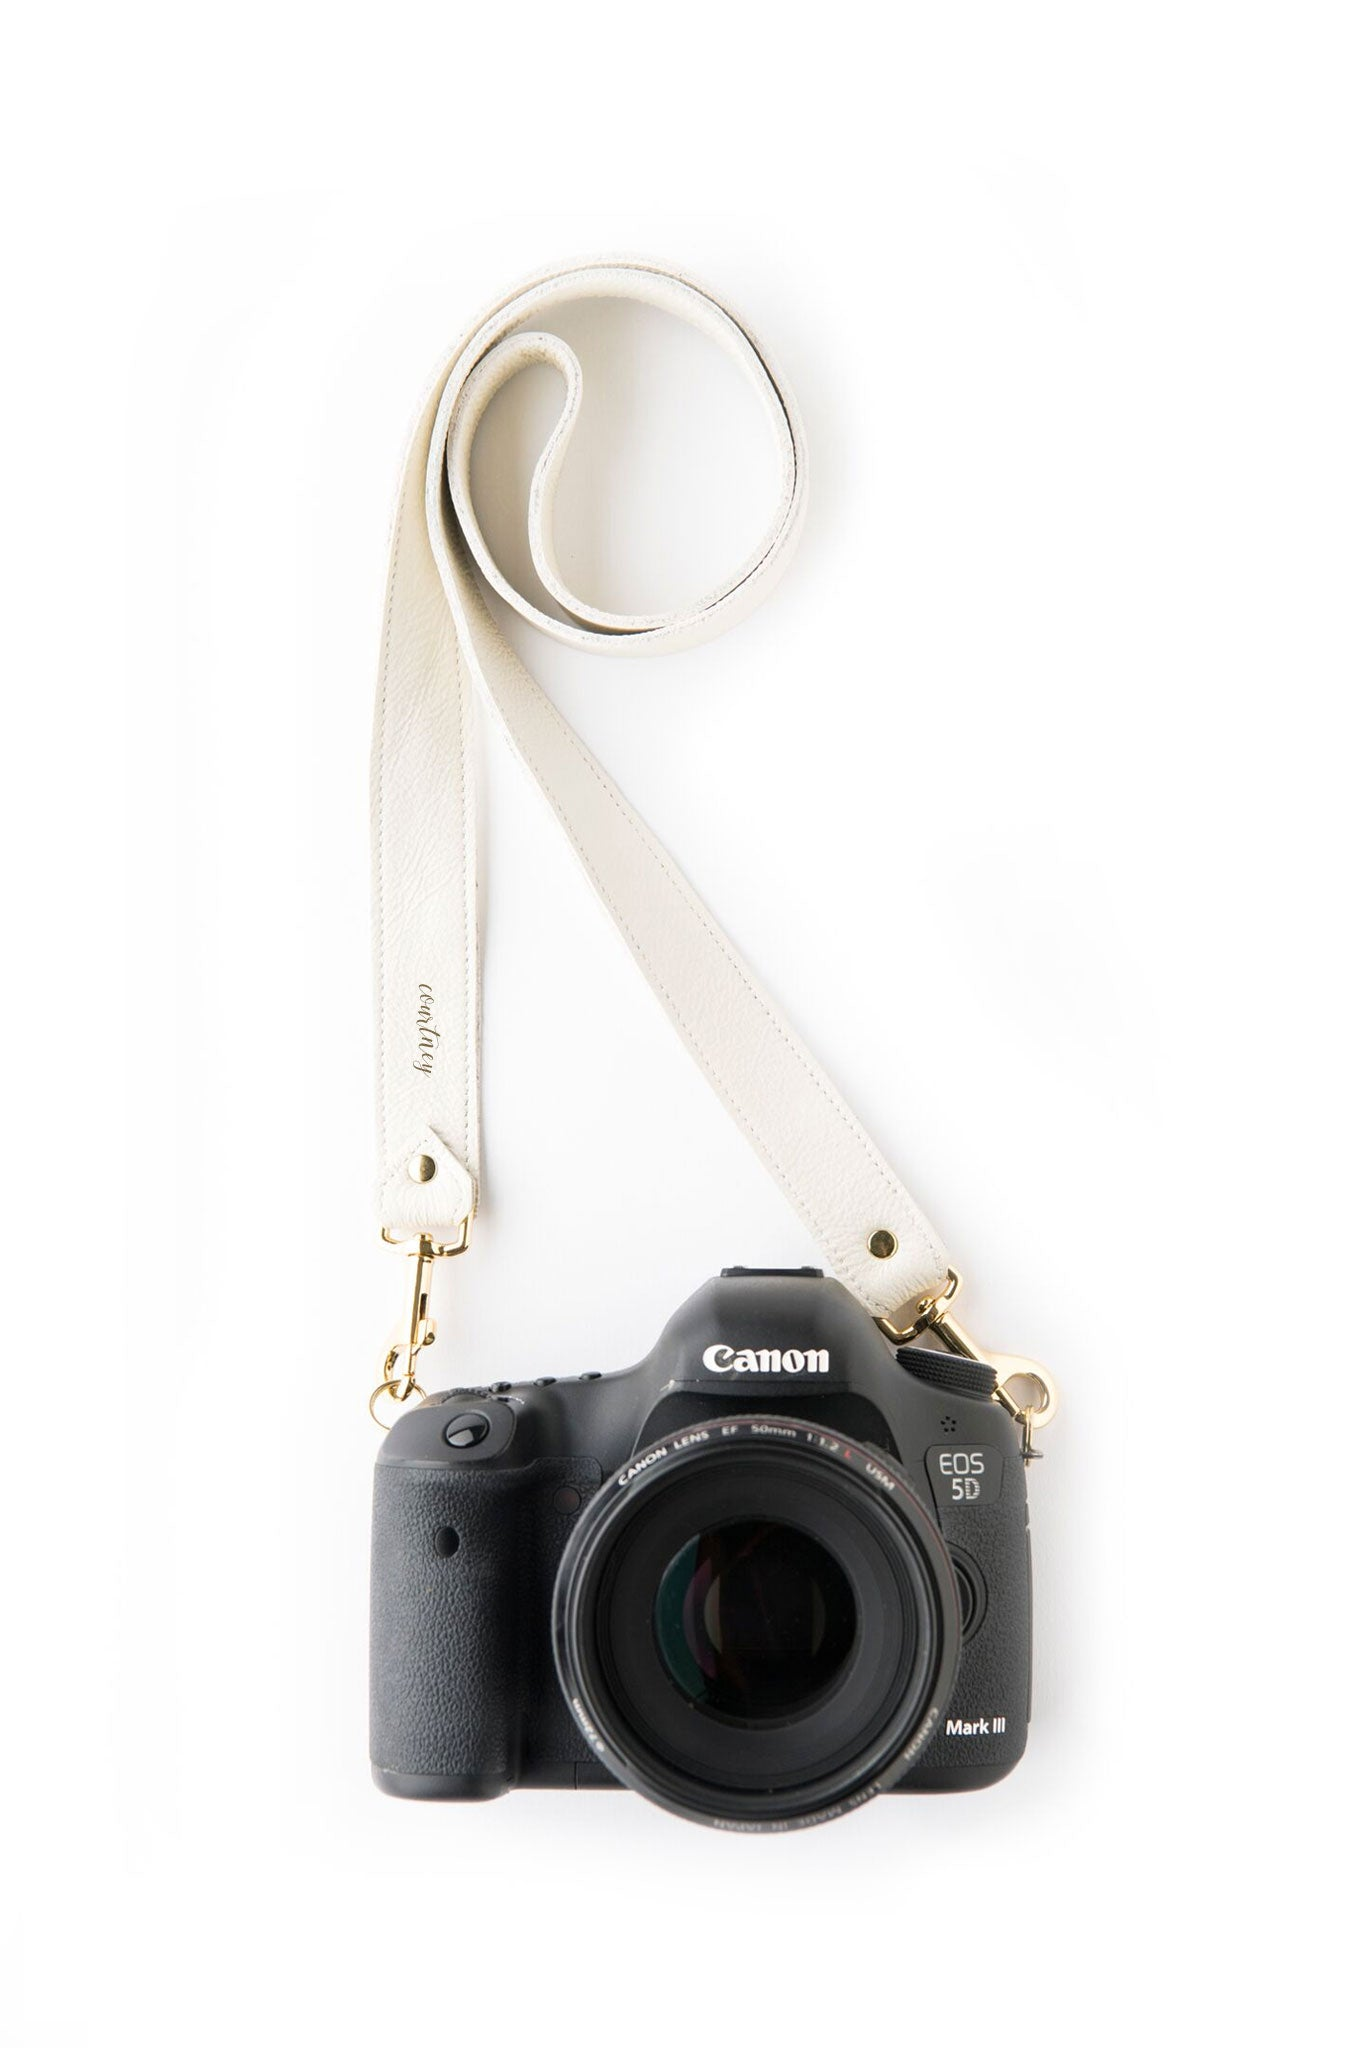 FOTO | The Designer in Ivory - an ivory white genuine pebbled leather camera strap that can be personalized with a monogram or business logo, making this leather camera strap the perfect personalized gift.